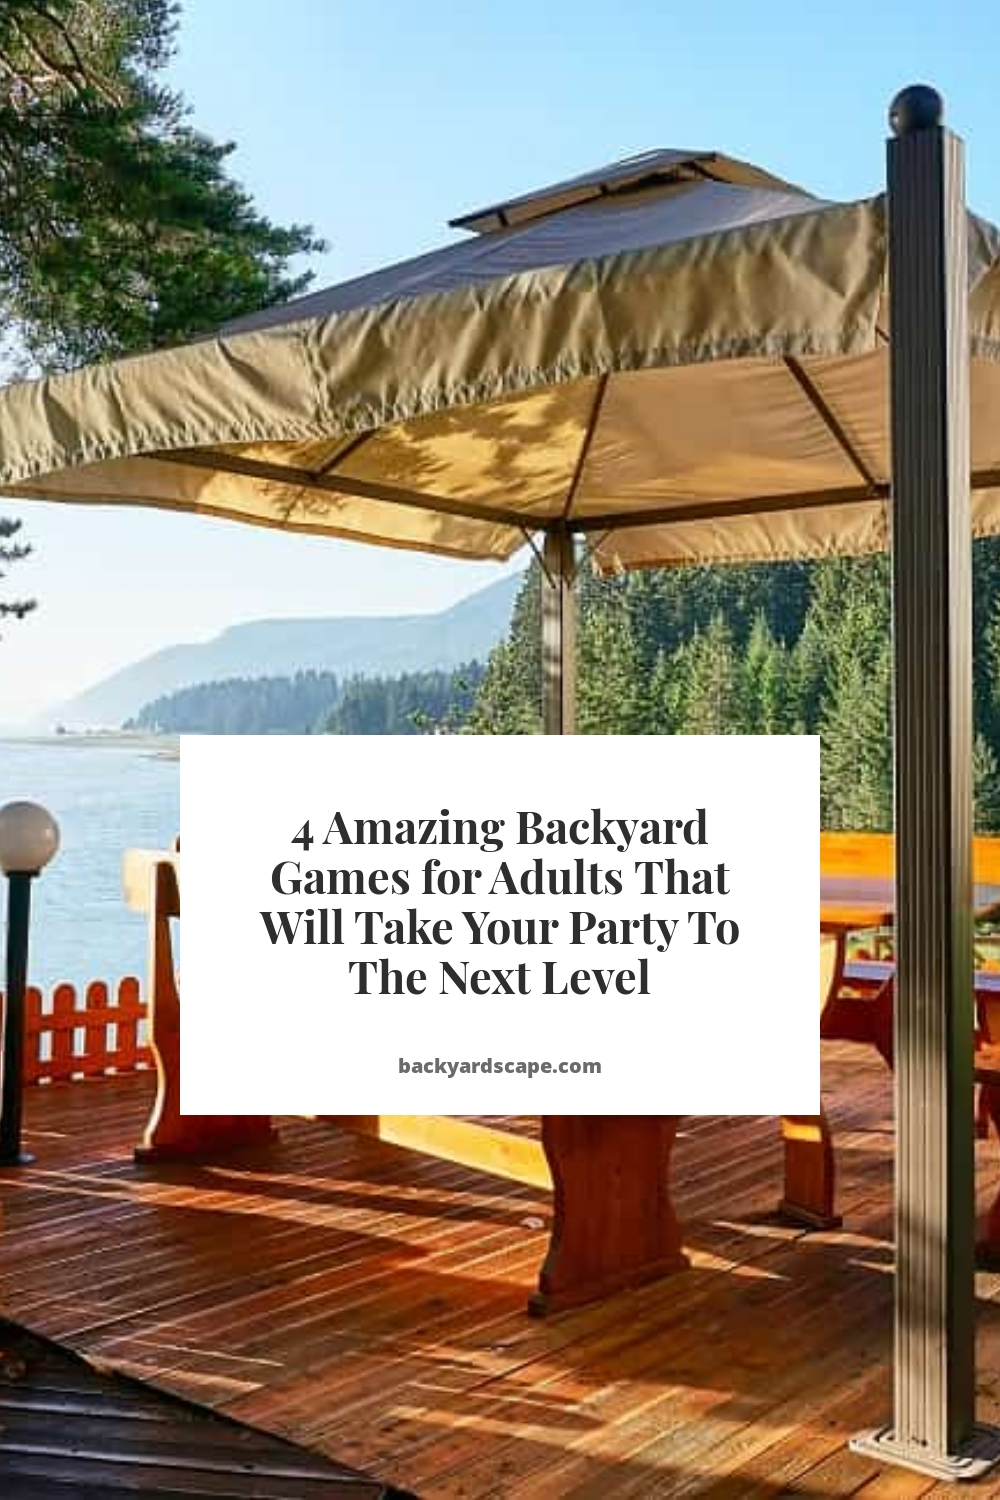 4 Amazing Backyard Games for Adults That Will Take Your Party To The Next Level